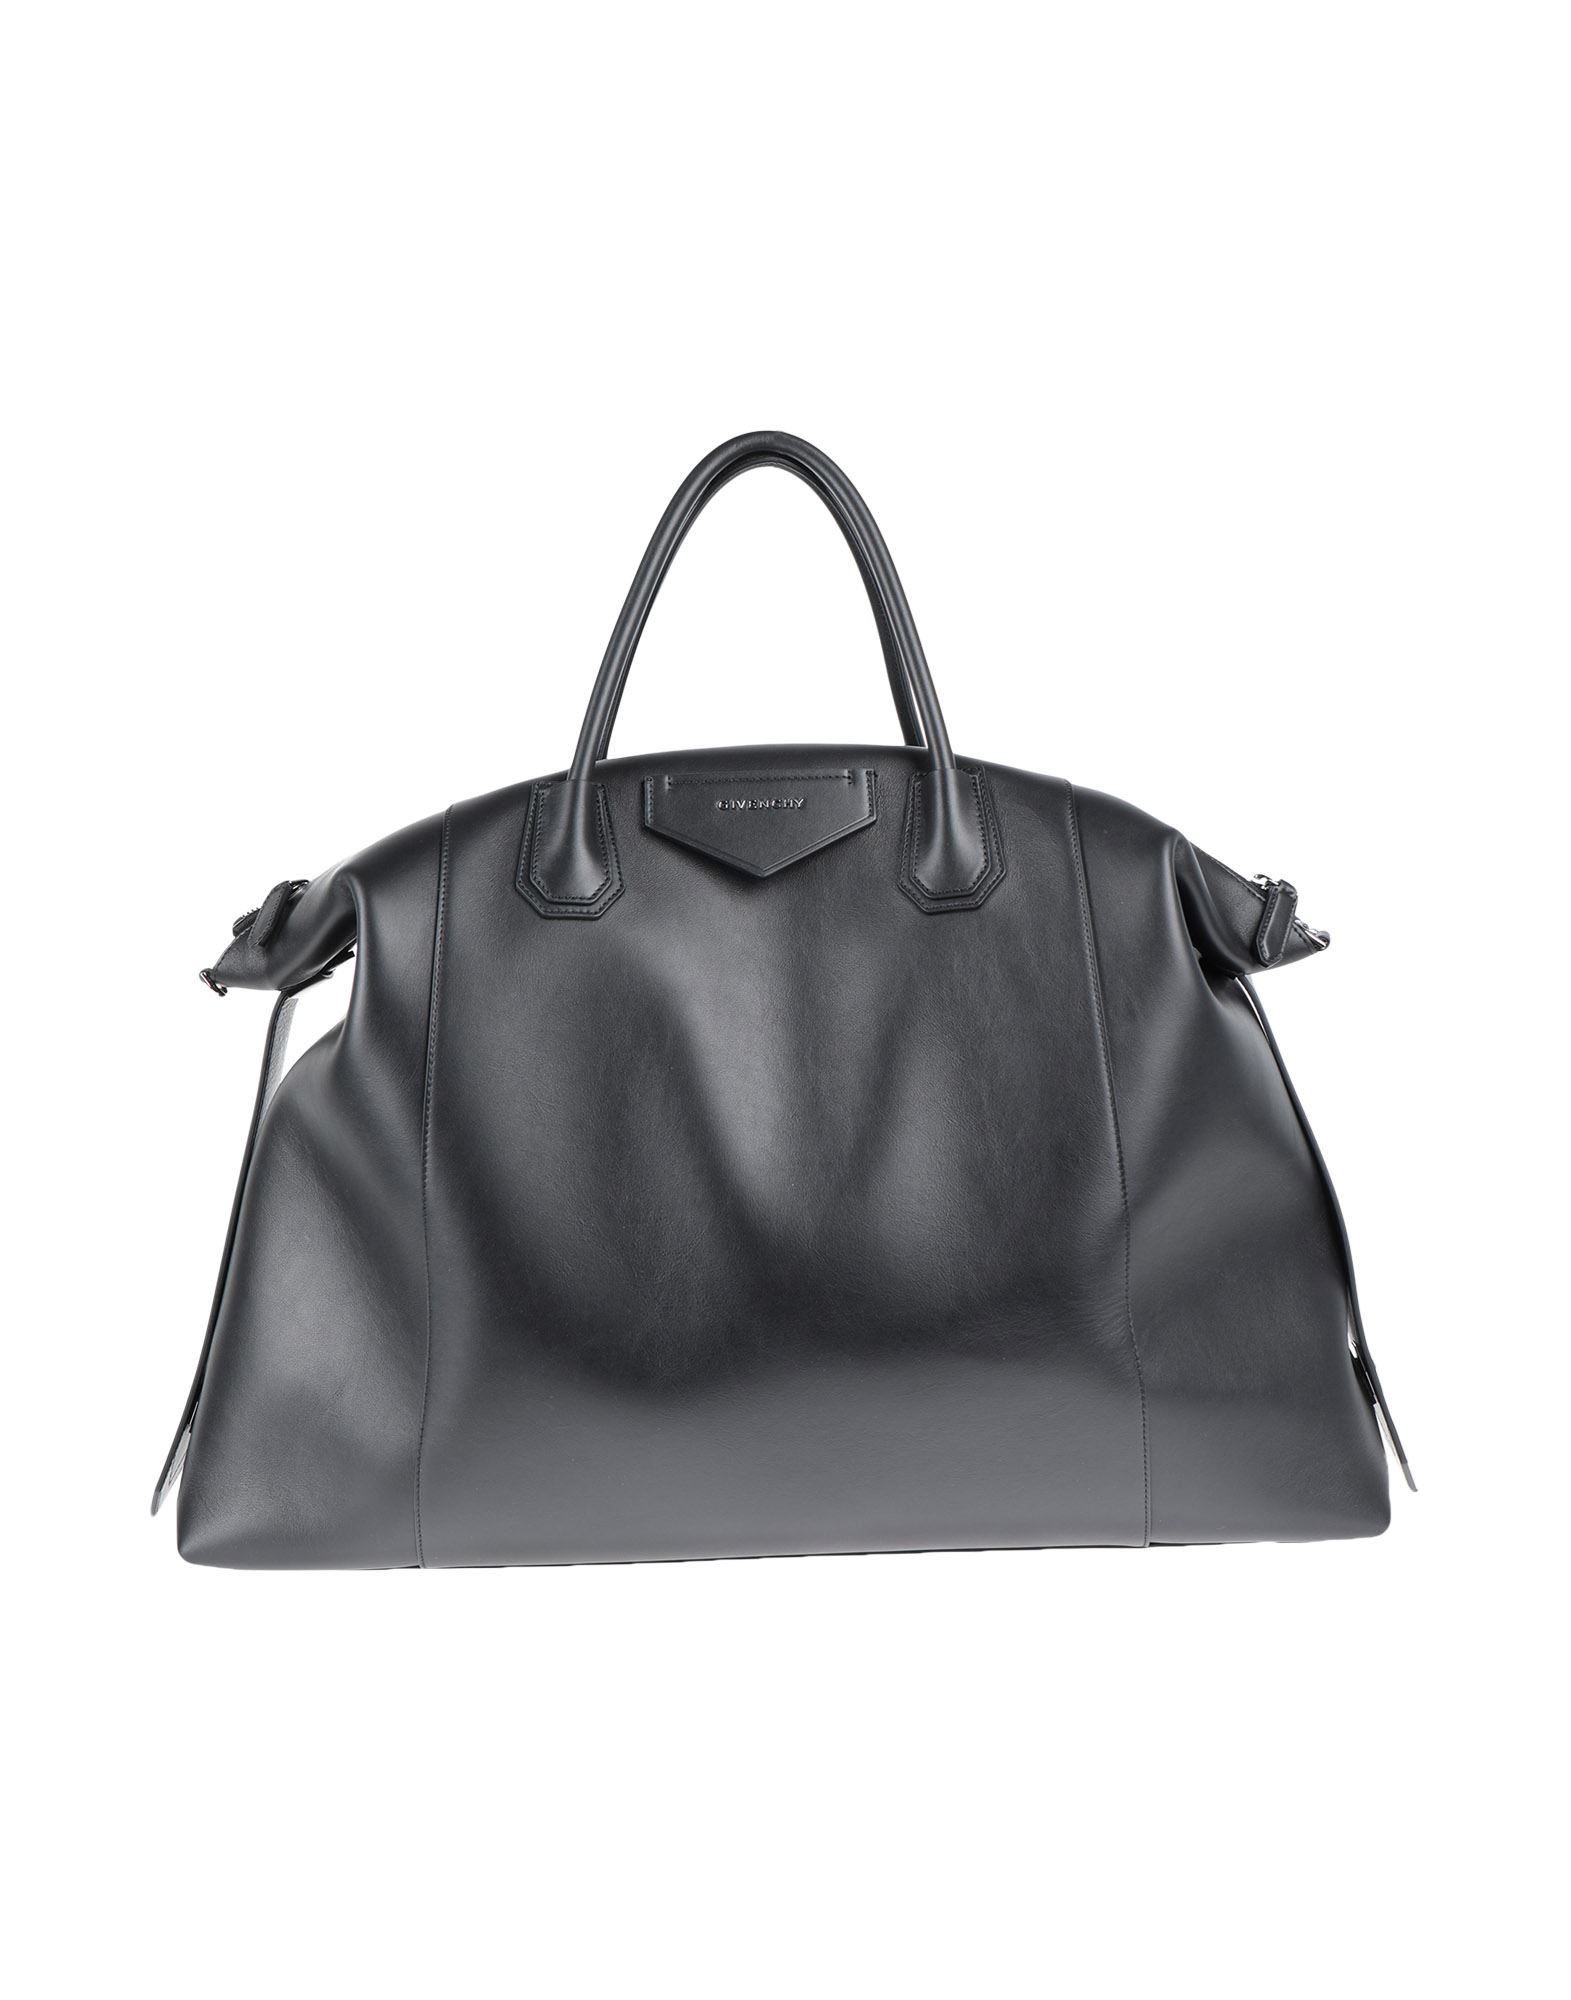 GIVENCHY Travel duffel bags - Item 45577354